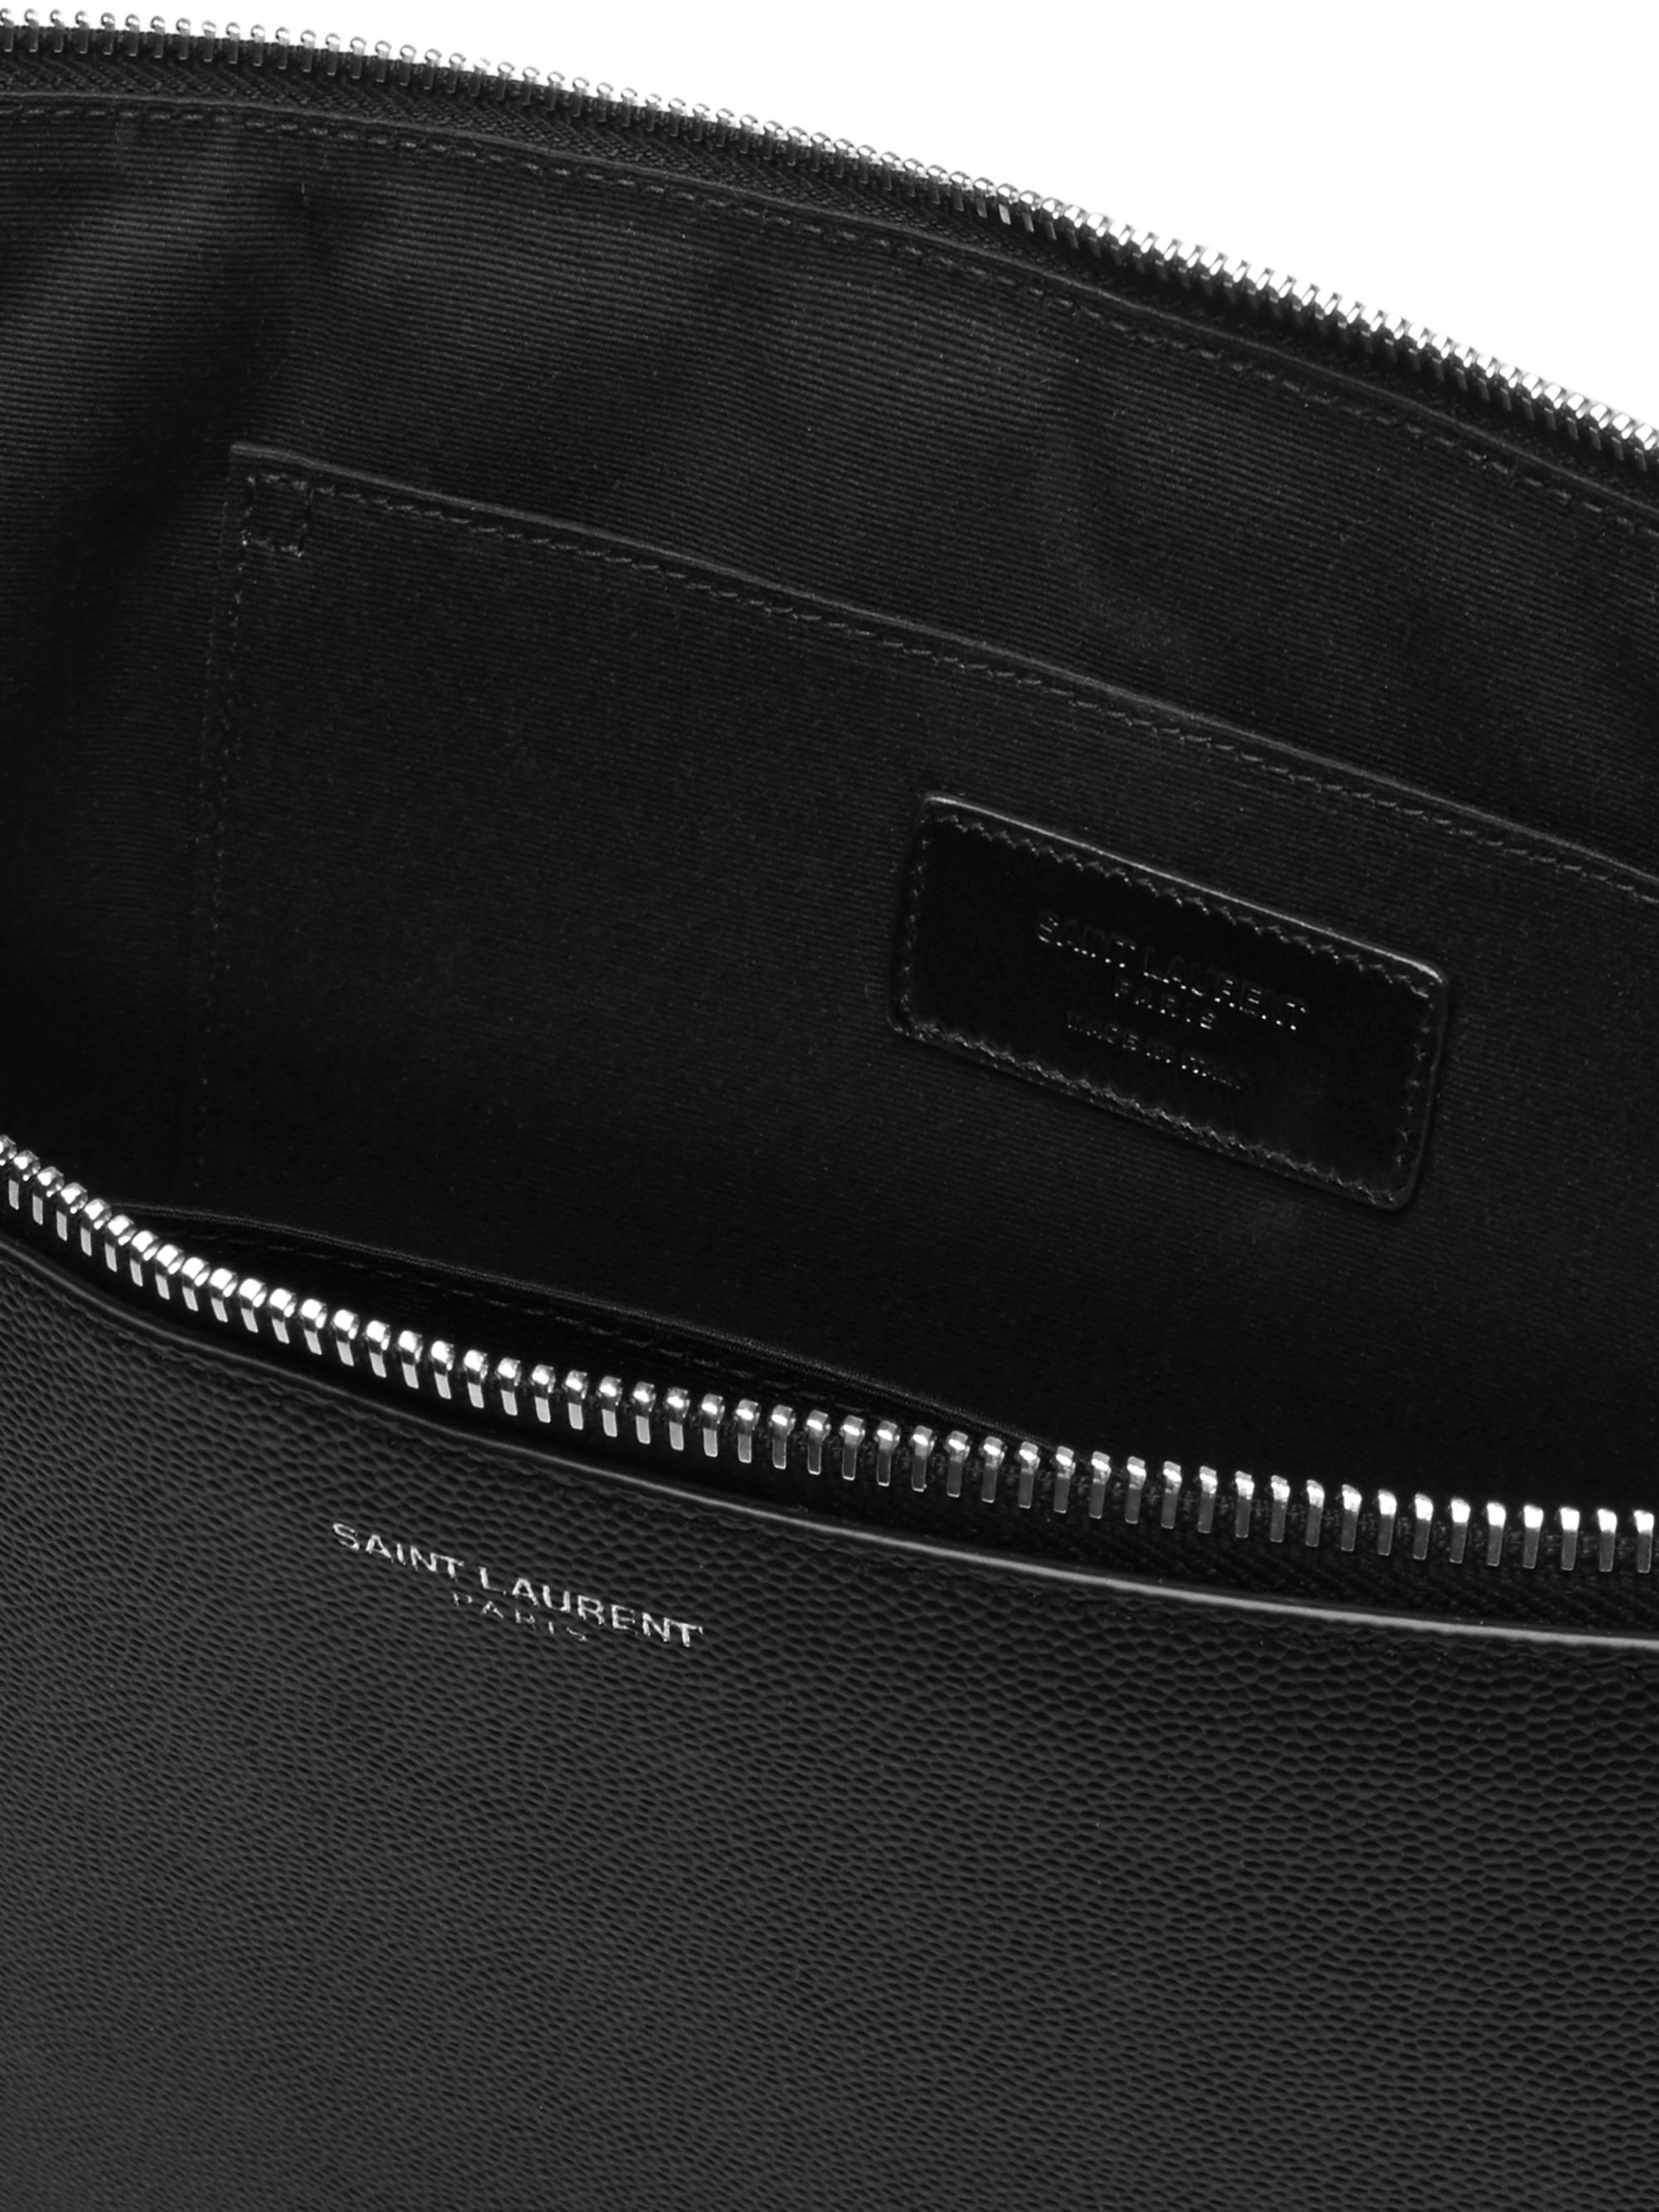 SAINT LAURENT Pebble-Grain Leather Pouch